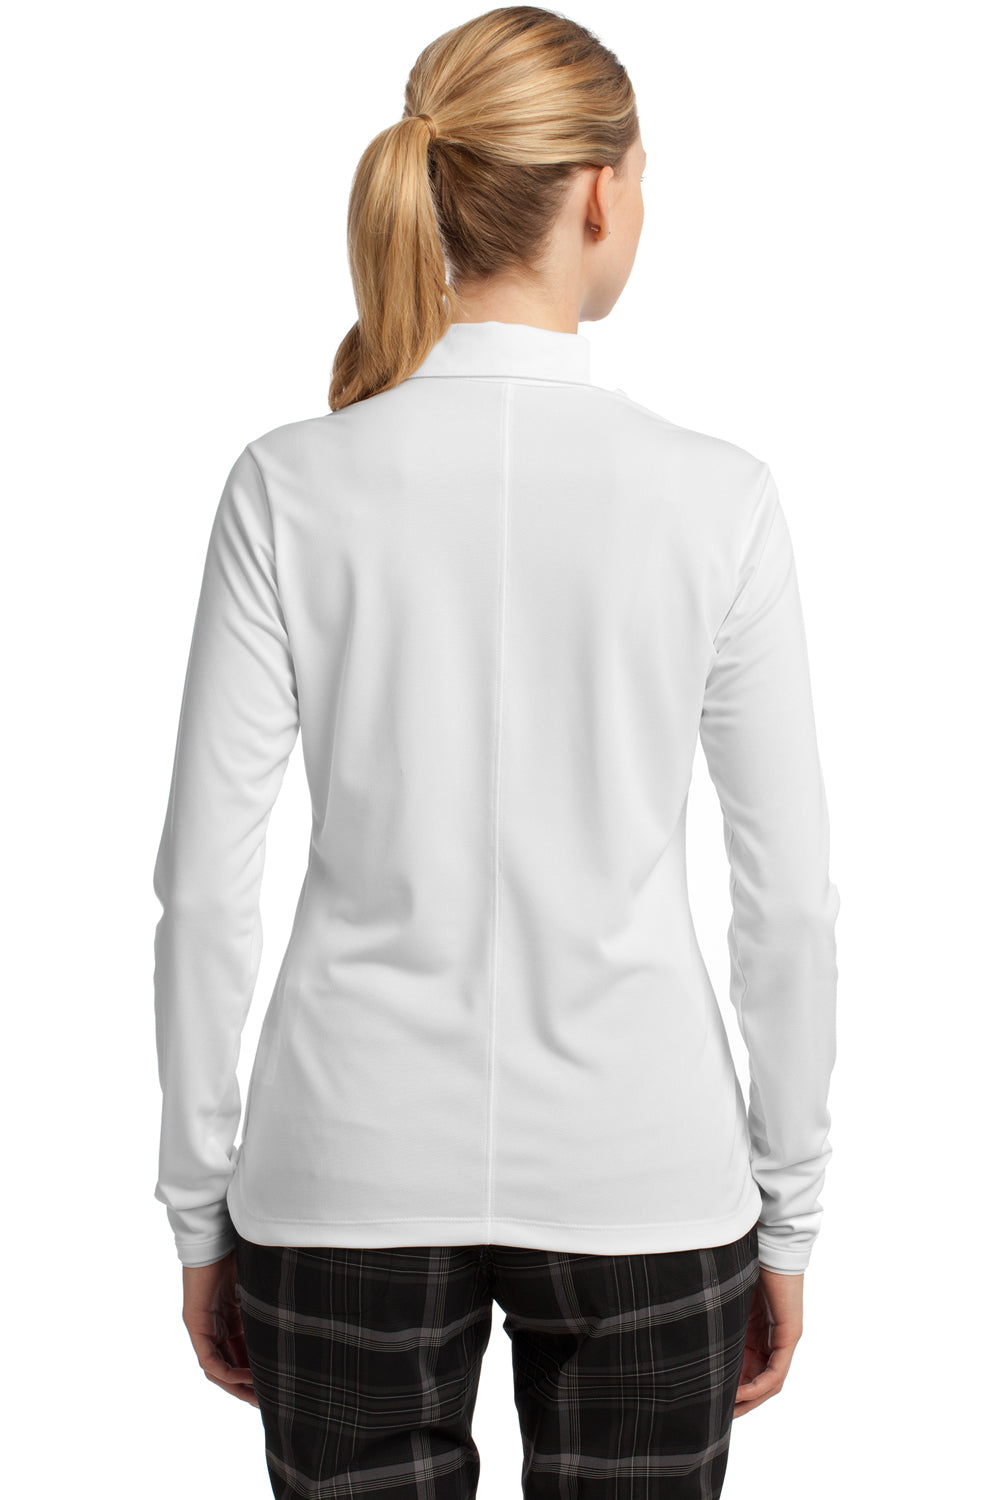 Nike 545322 Womens Stretch Tech Dri-Fit Moisture Wicking Short Sleeve Polo Shirt White Back